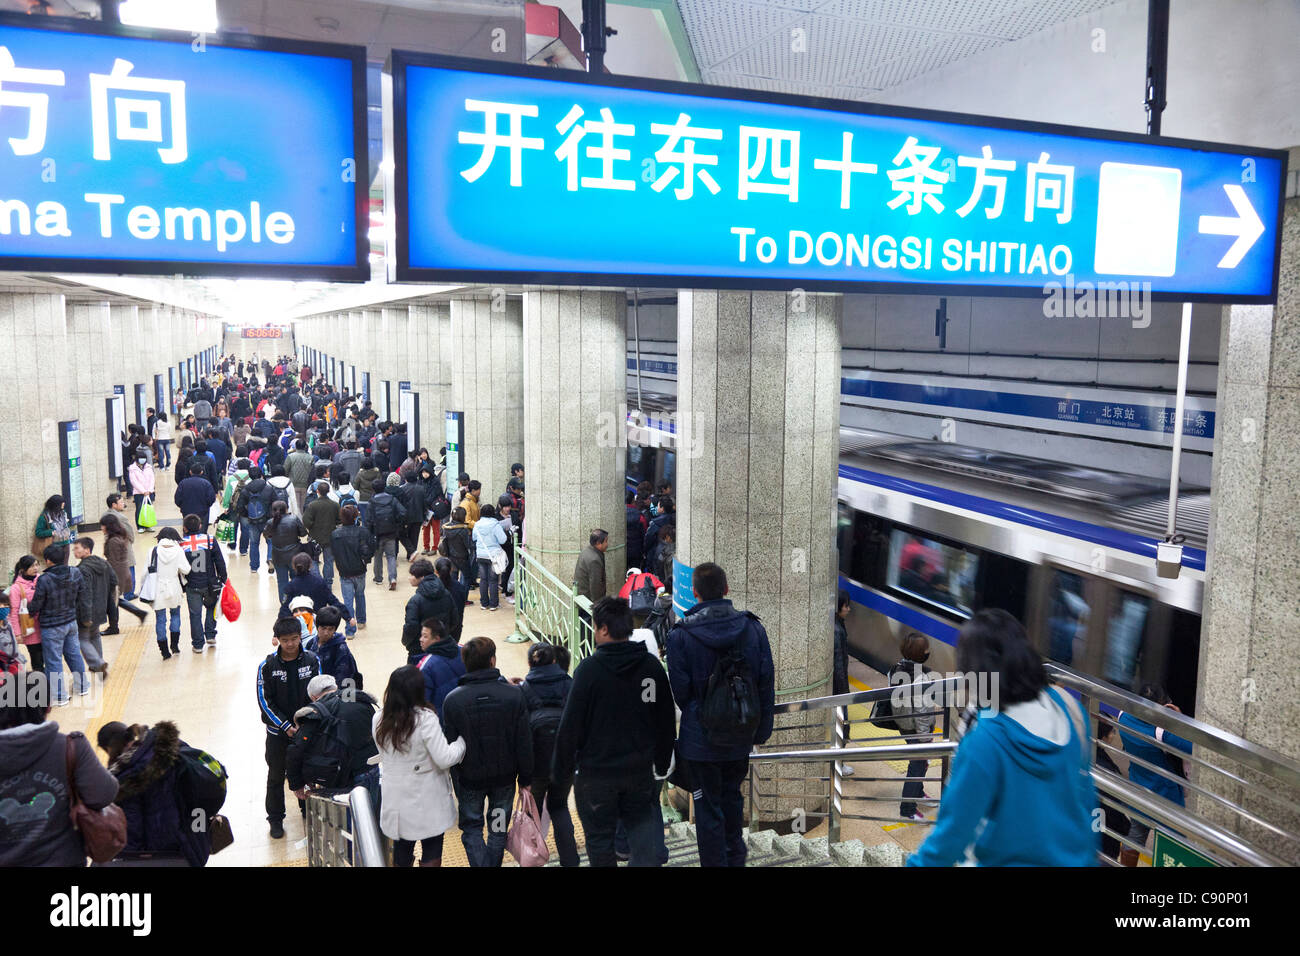 Subway station Dongzhimen, metro, Chinese characters, passengers at rush-hour, Beijing, People's Republic of - Stock Image